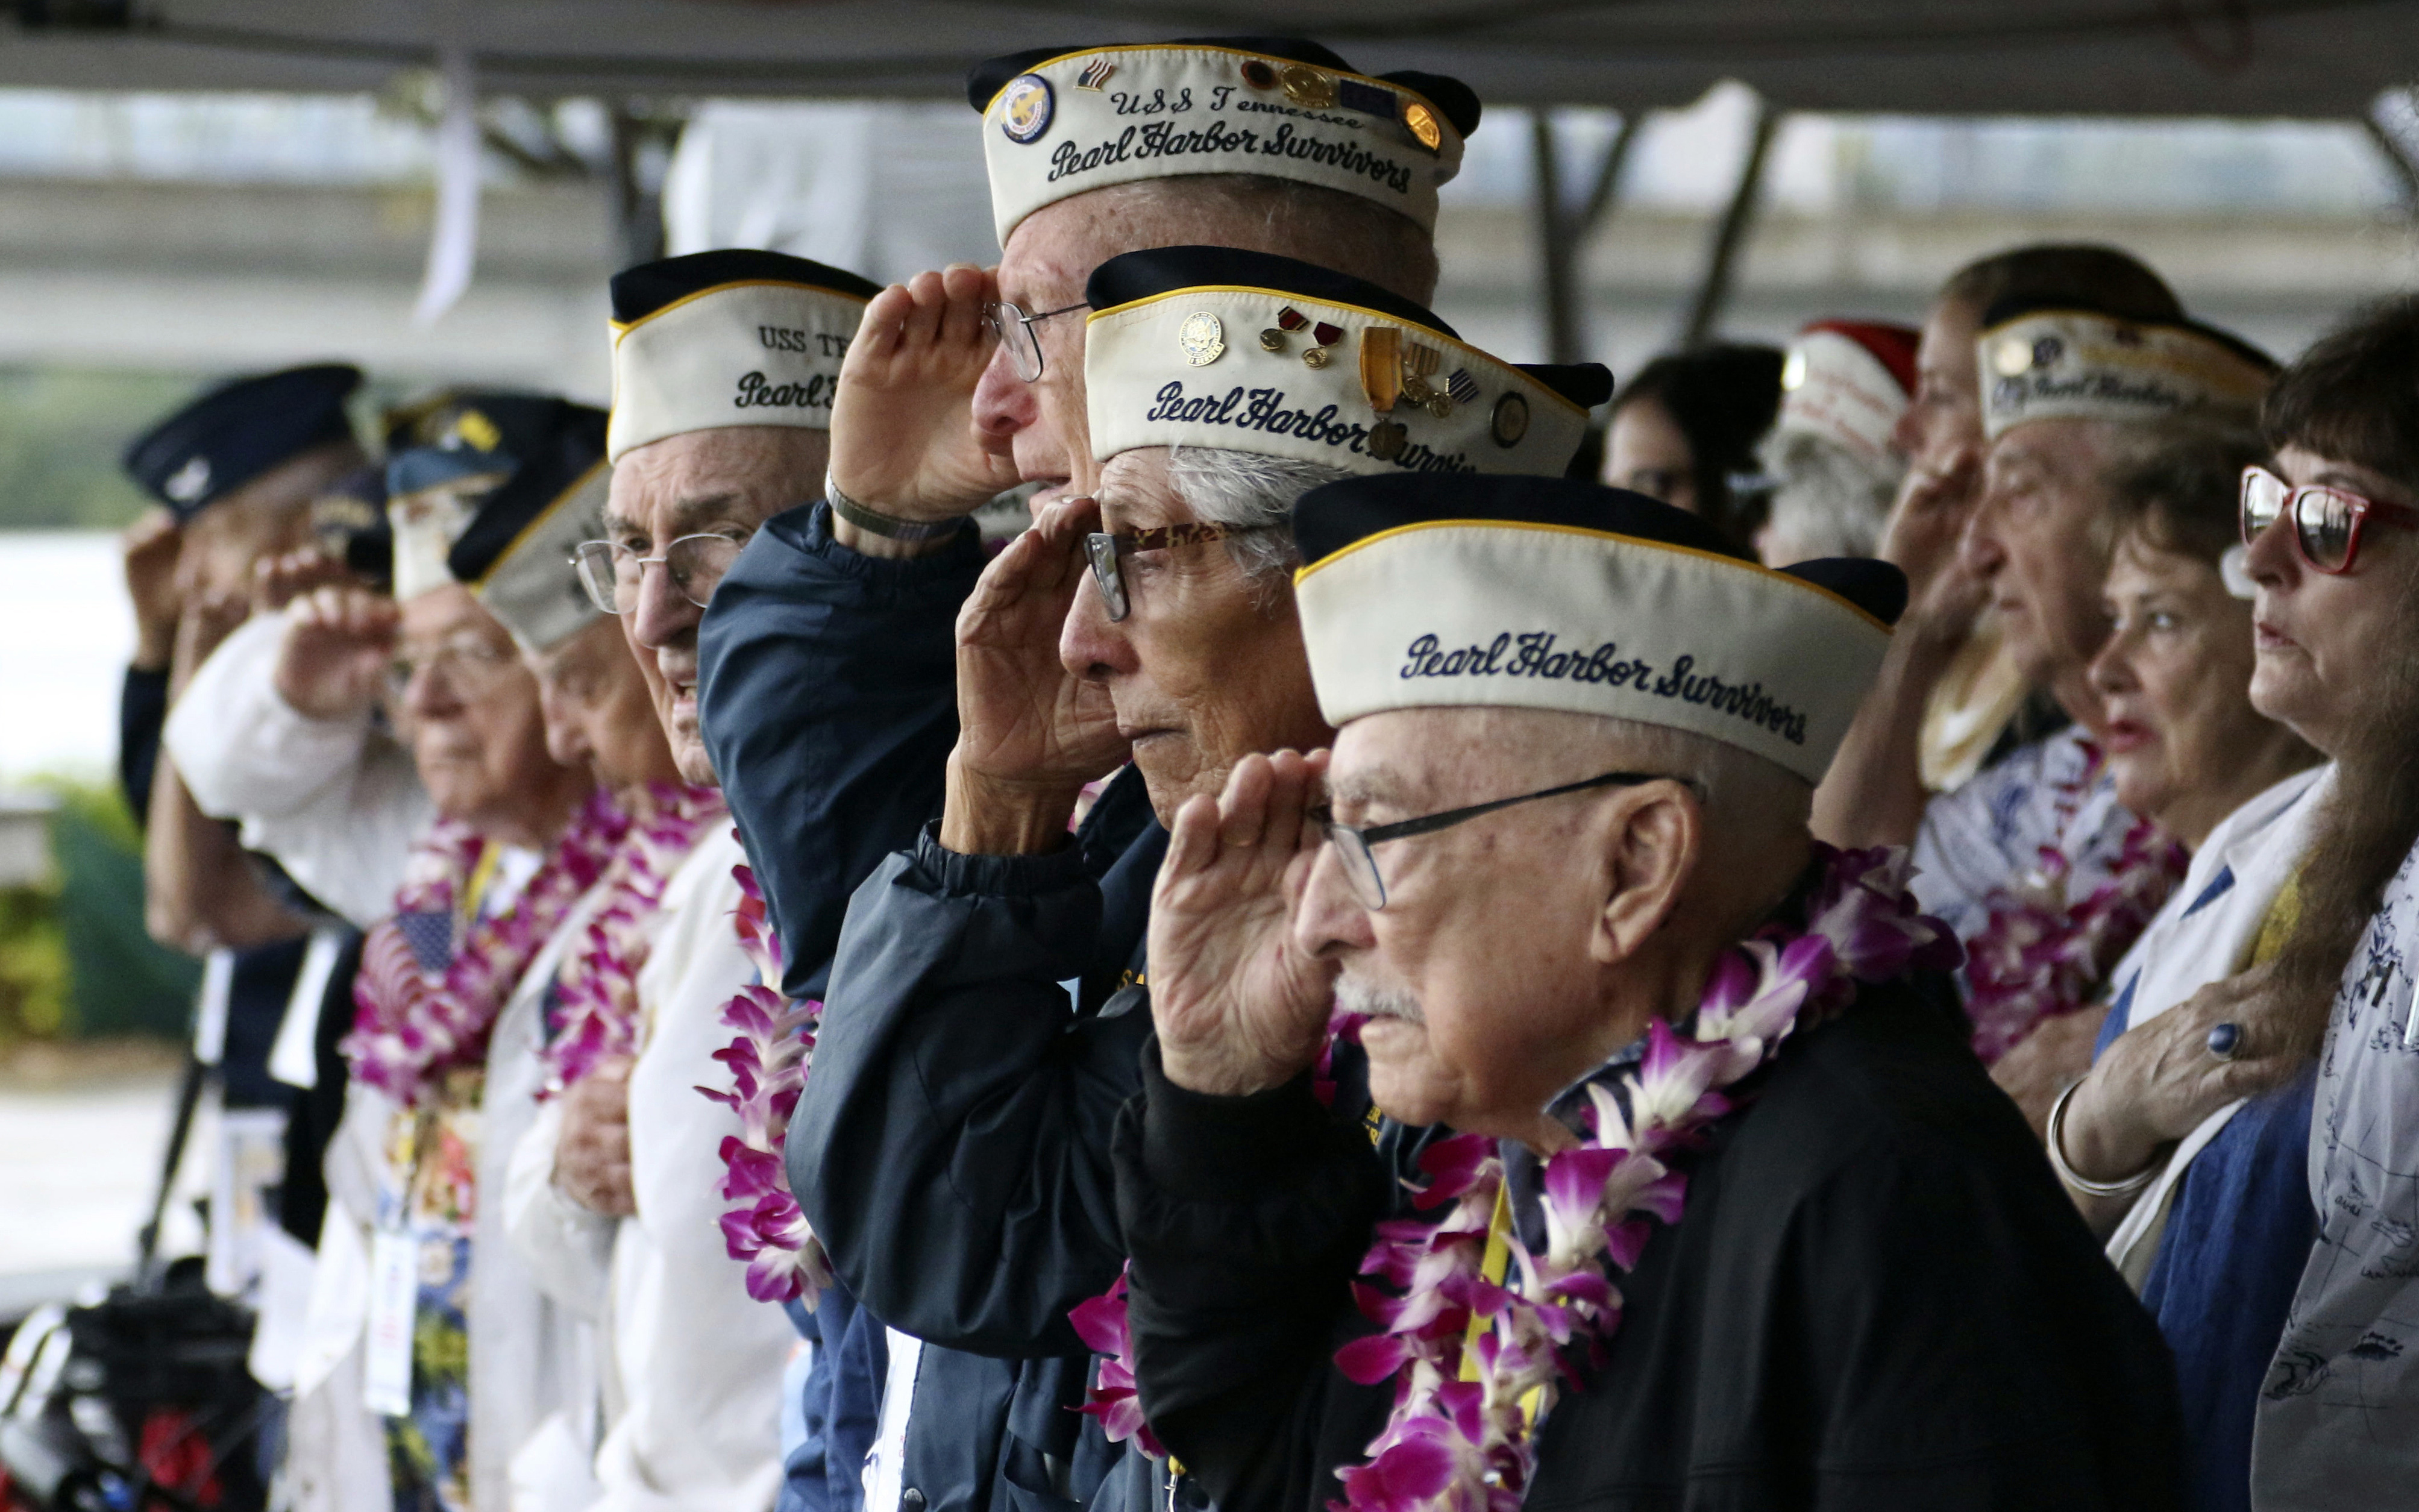 In this Dec. 7, 2018, file photo, Pearl Harbor survivors salute during the National Anthem at a ceremony in Pearl Harbor, Hawaii marking the 77th anniversary of the Japanese attack. Survivors and members of the public are expected to gather in Pearl Harbor on Saturday, Dec. 7, 2019, to remember those killed when Japanese planes bombed the Hawaii naval base 78 years ago and launched the U.S. into World War II. Organizers plan for about a dozen survivors of the attack to attend the annual ceremony, the youngest of whom are now in their late 90s.